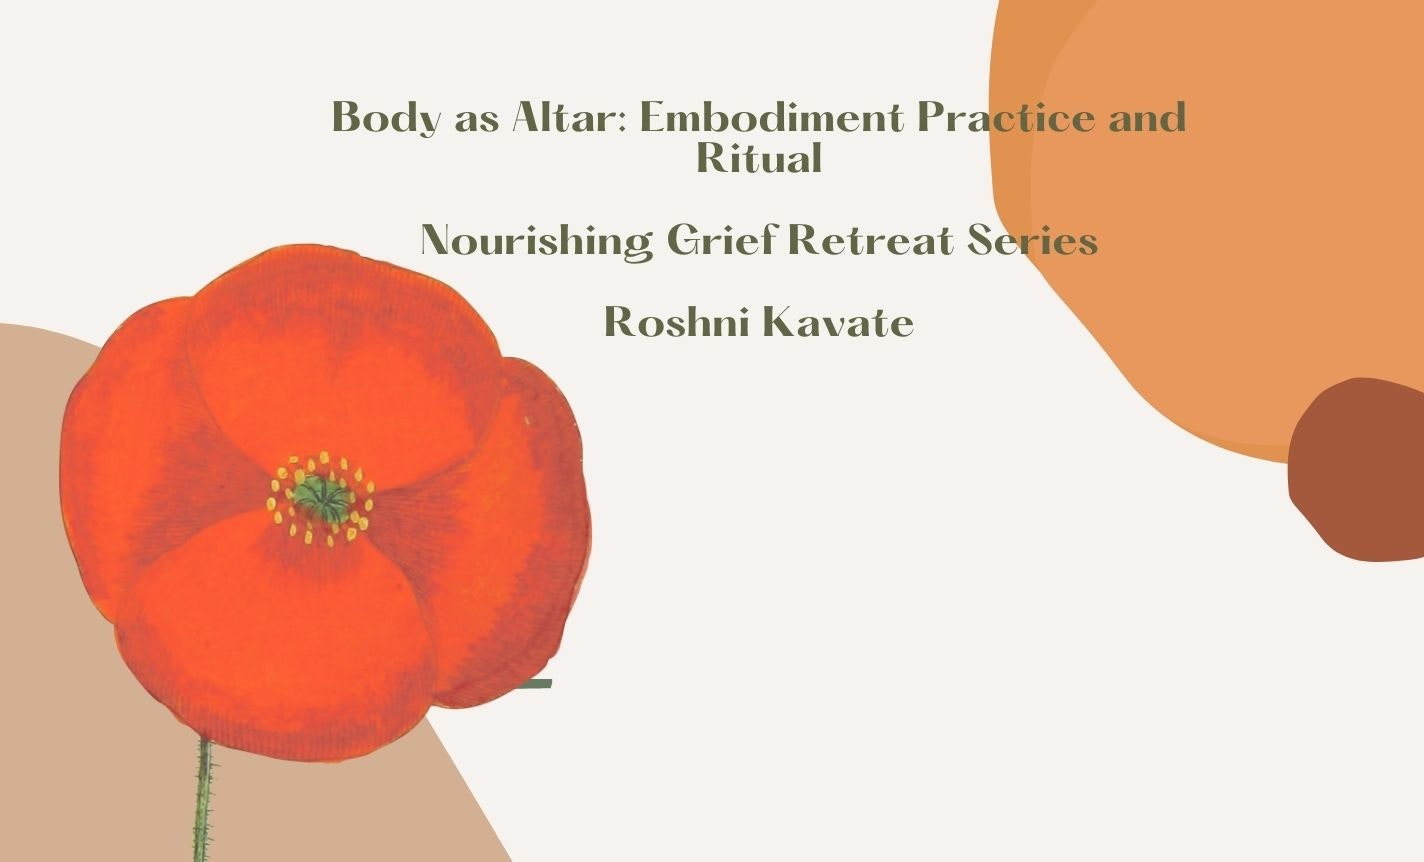 Body as Altar: Embodiment Practice and Ritual